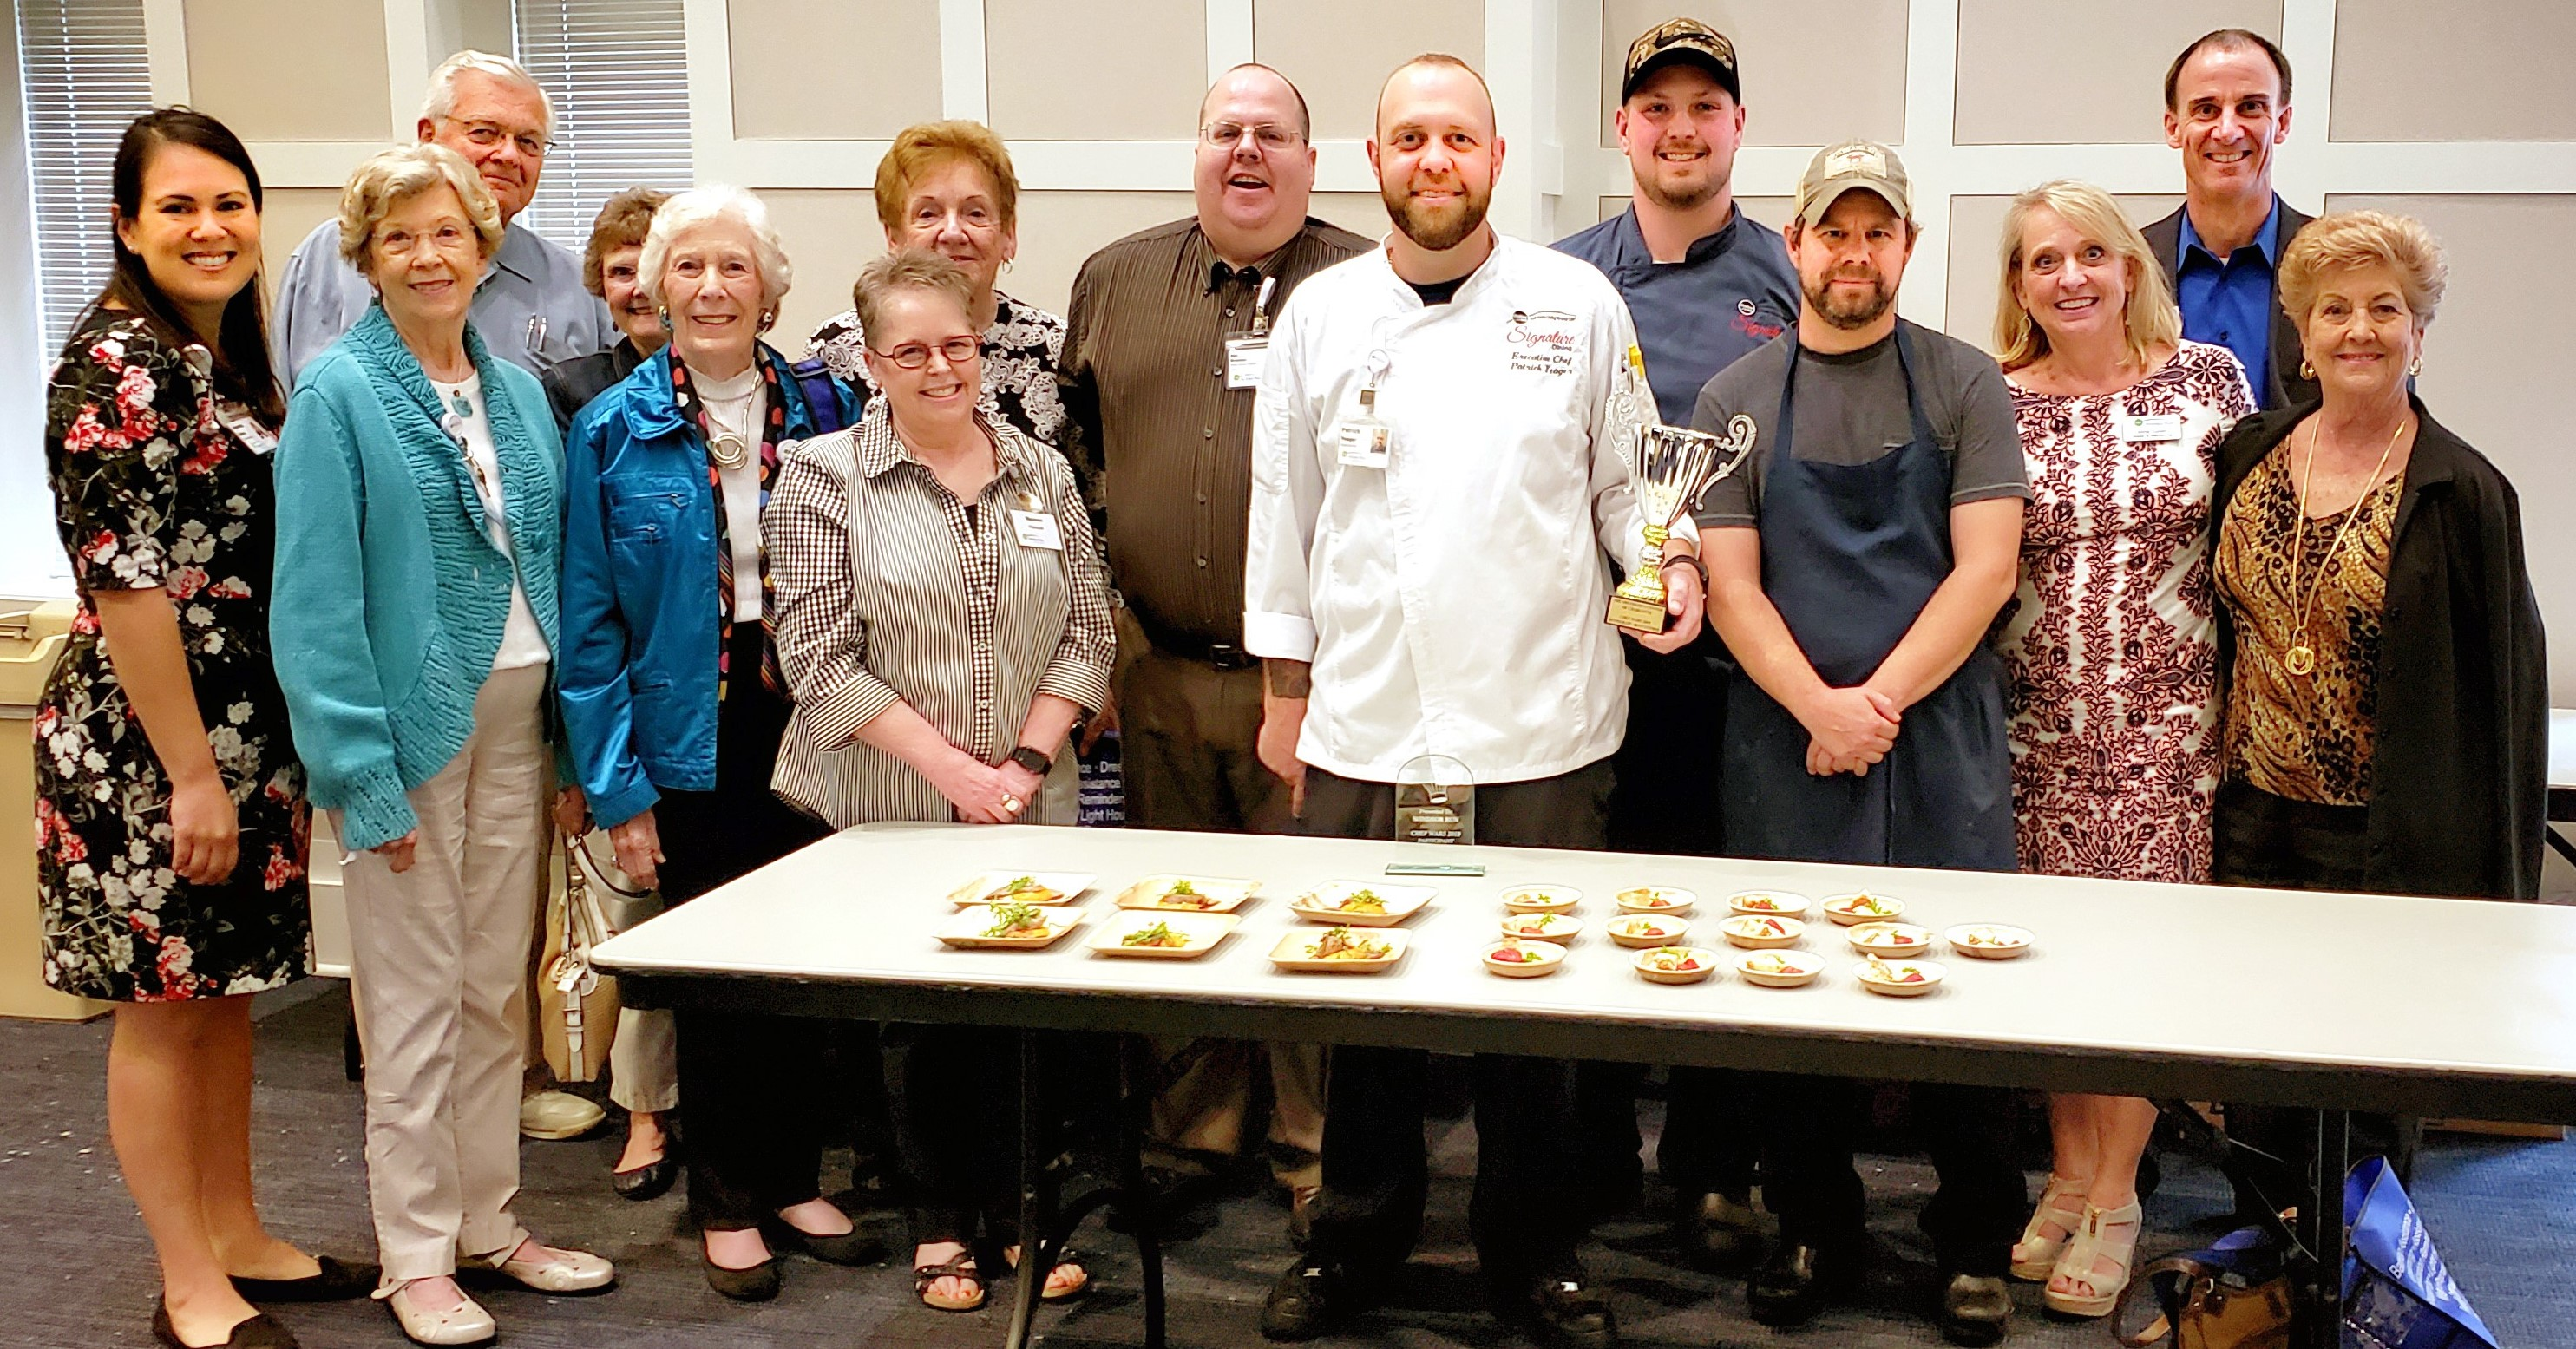 Residents and employees from Windsor Run pose with the trophy and plates of the award-winning entree at the 2019 Chef Wars competition in Charlotte.